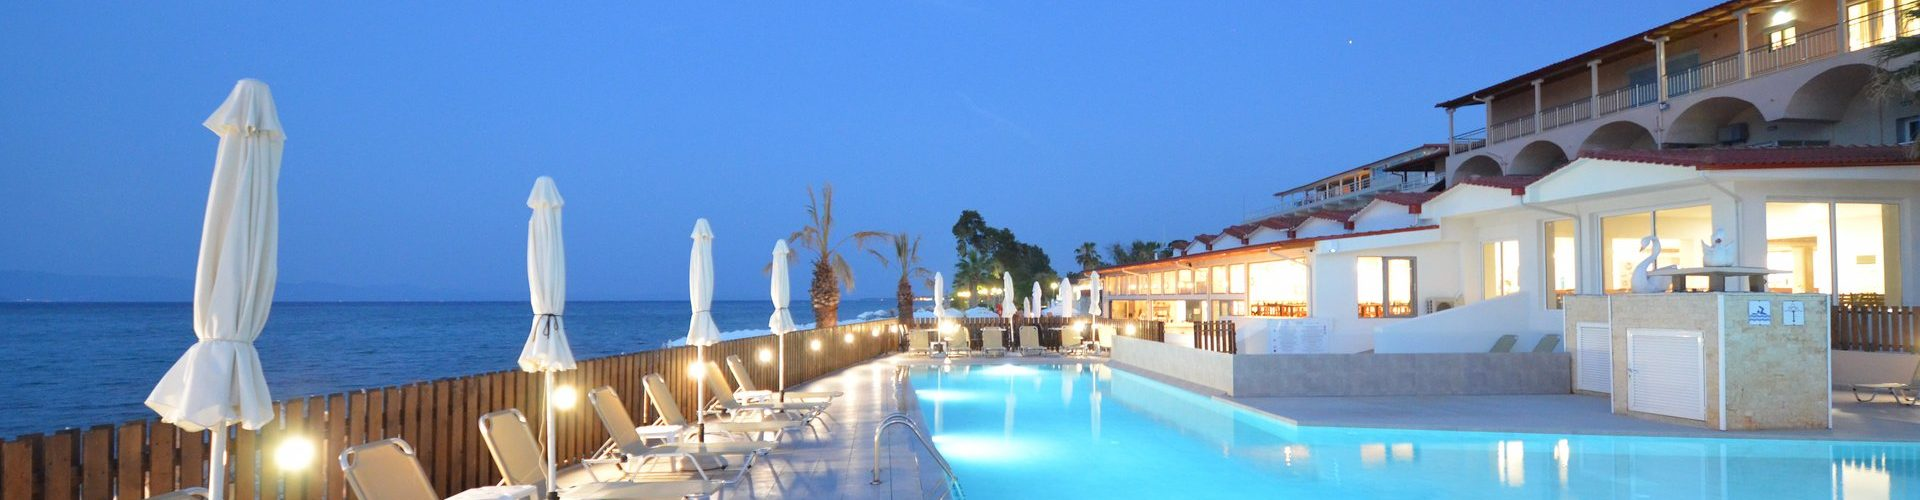 Sousouras Hotel Pool 23